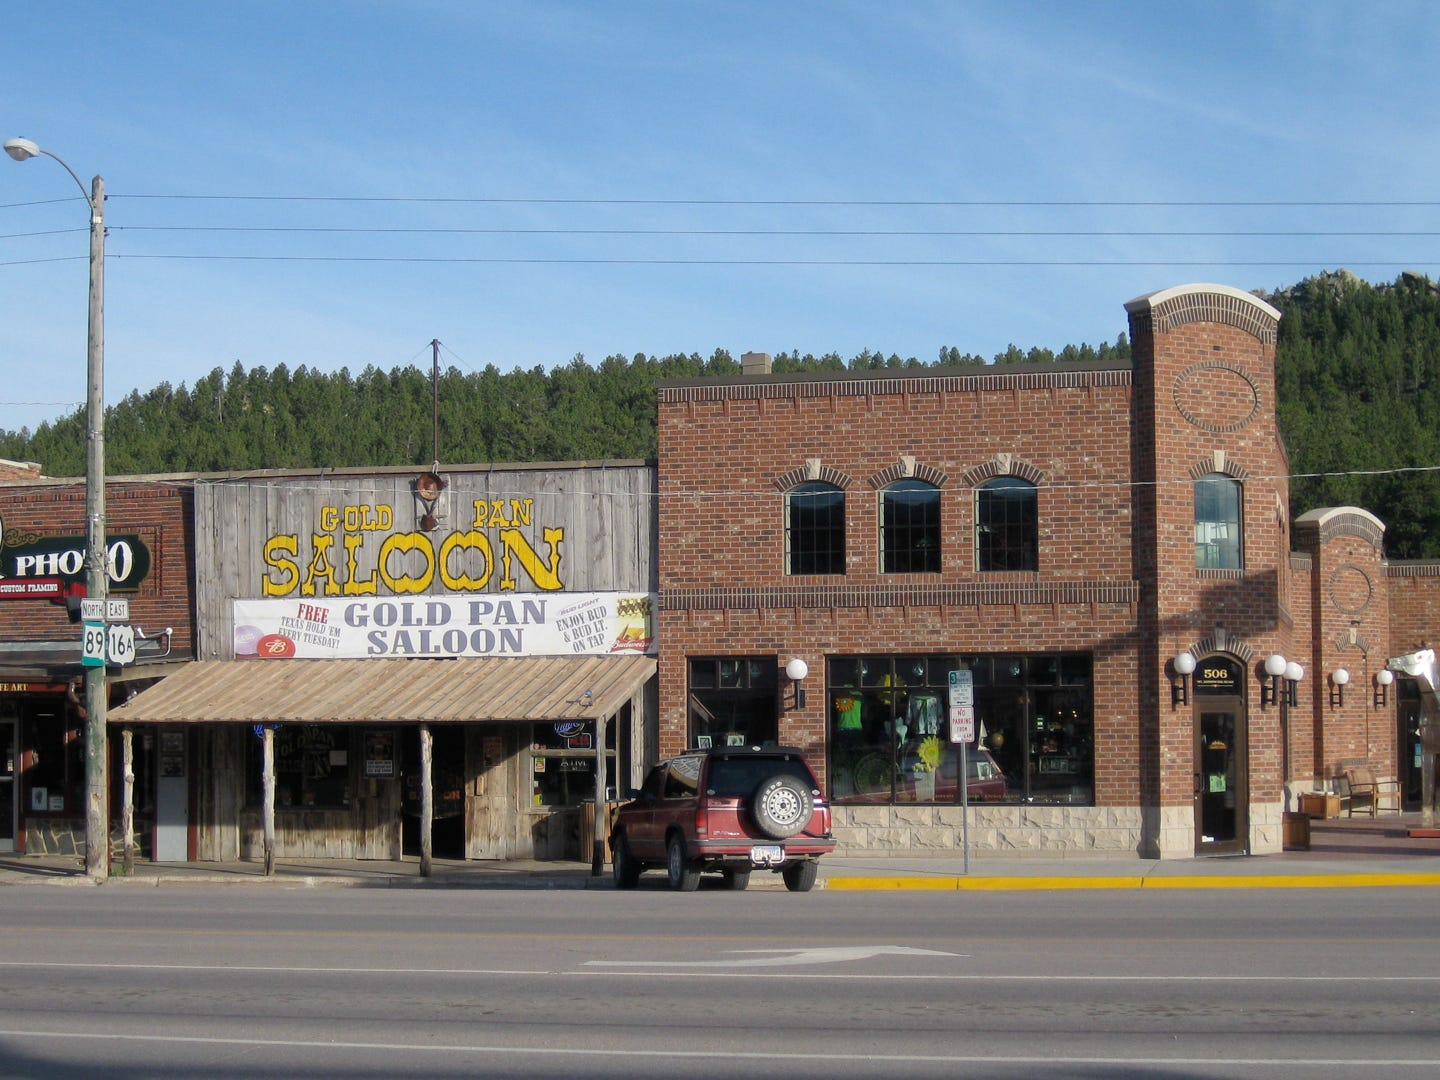 South Dakota: For an adventurous weekend getaway, head to Custer, which is located on the edge of Custer State Park. Whether your thrill of choice is rock climbing or hiking, you can do that here. There are also many lodging, dining, family fun and shopping options in the area as well. The cheapest time to visit the state of South Dakota is June, so keep that in mind when planning your weekend getaway. Sylvan Rocks Discover Climbing Adventure (Half-Day Group Climbing): $94 per person for parties of two or more.